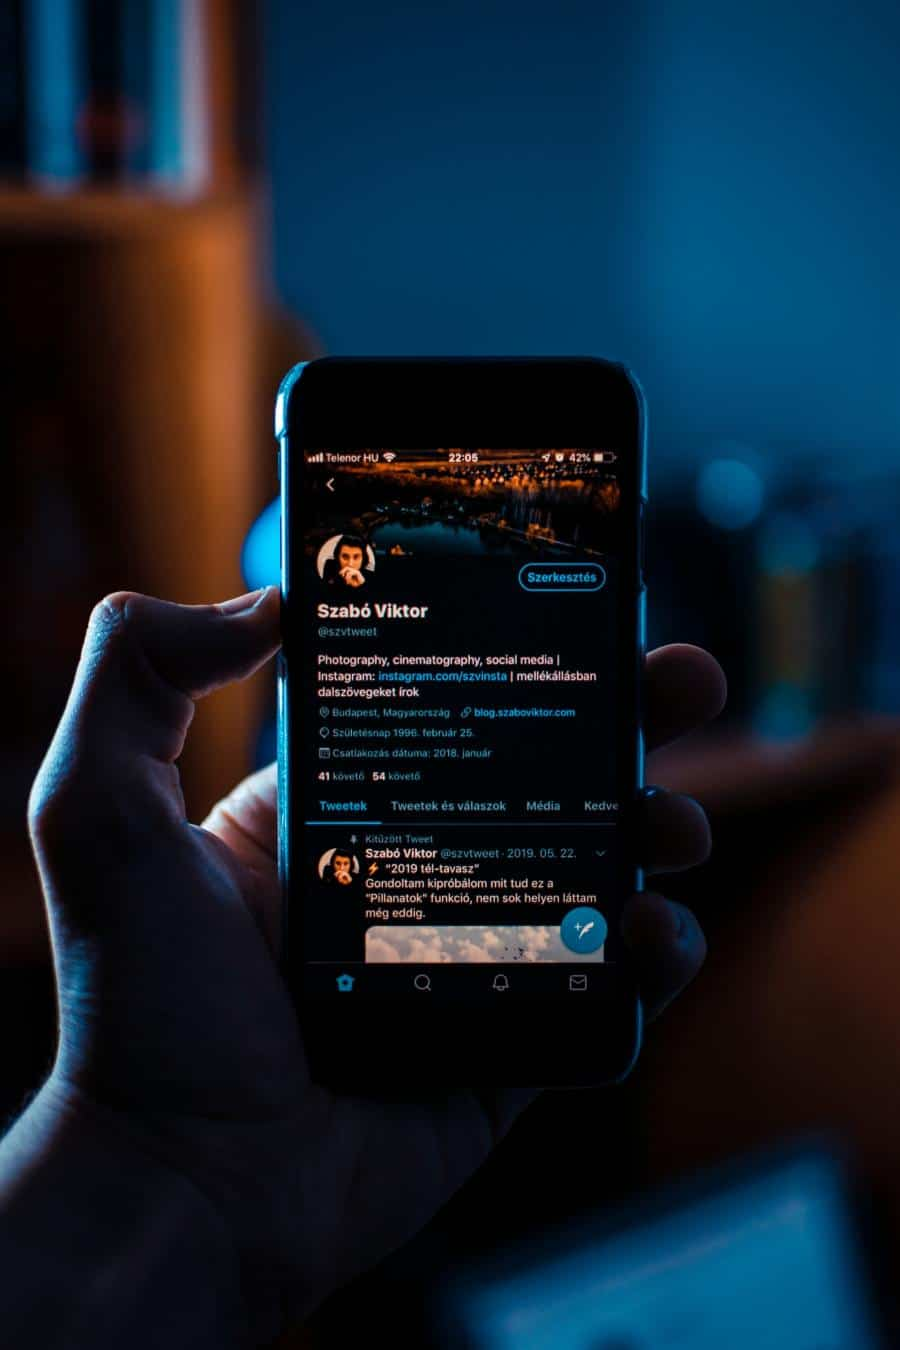 Twitter reveals that hackers broke into the DMs of 36 accounts in the massive hacking incident last week that showed flaw in in Twitter's security